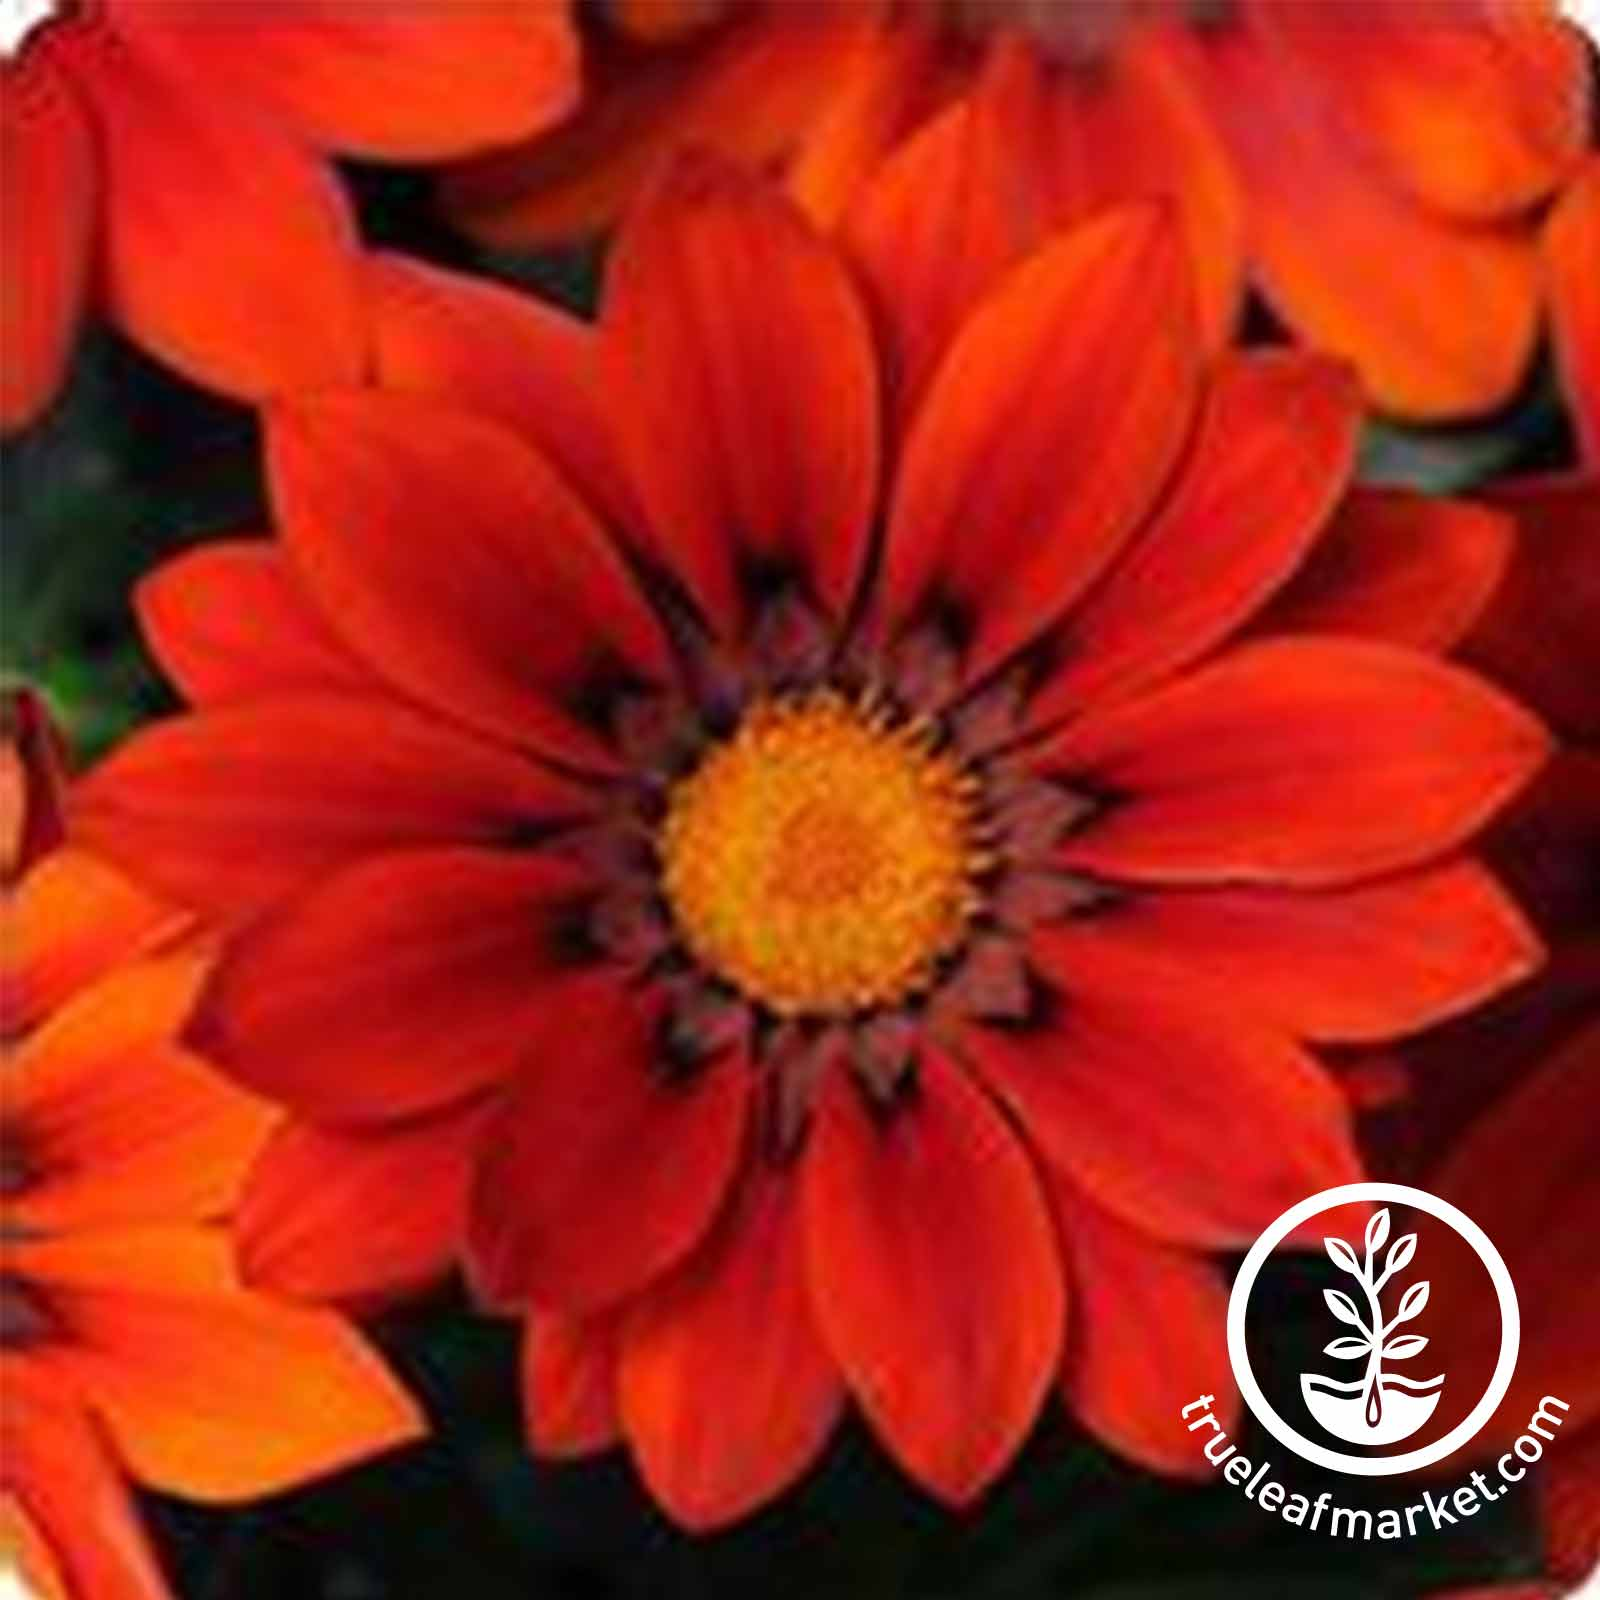 Gazania New Day Series Red Shades Seed